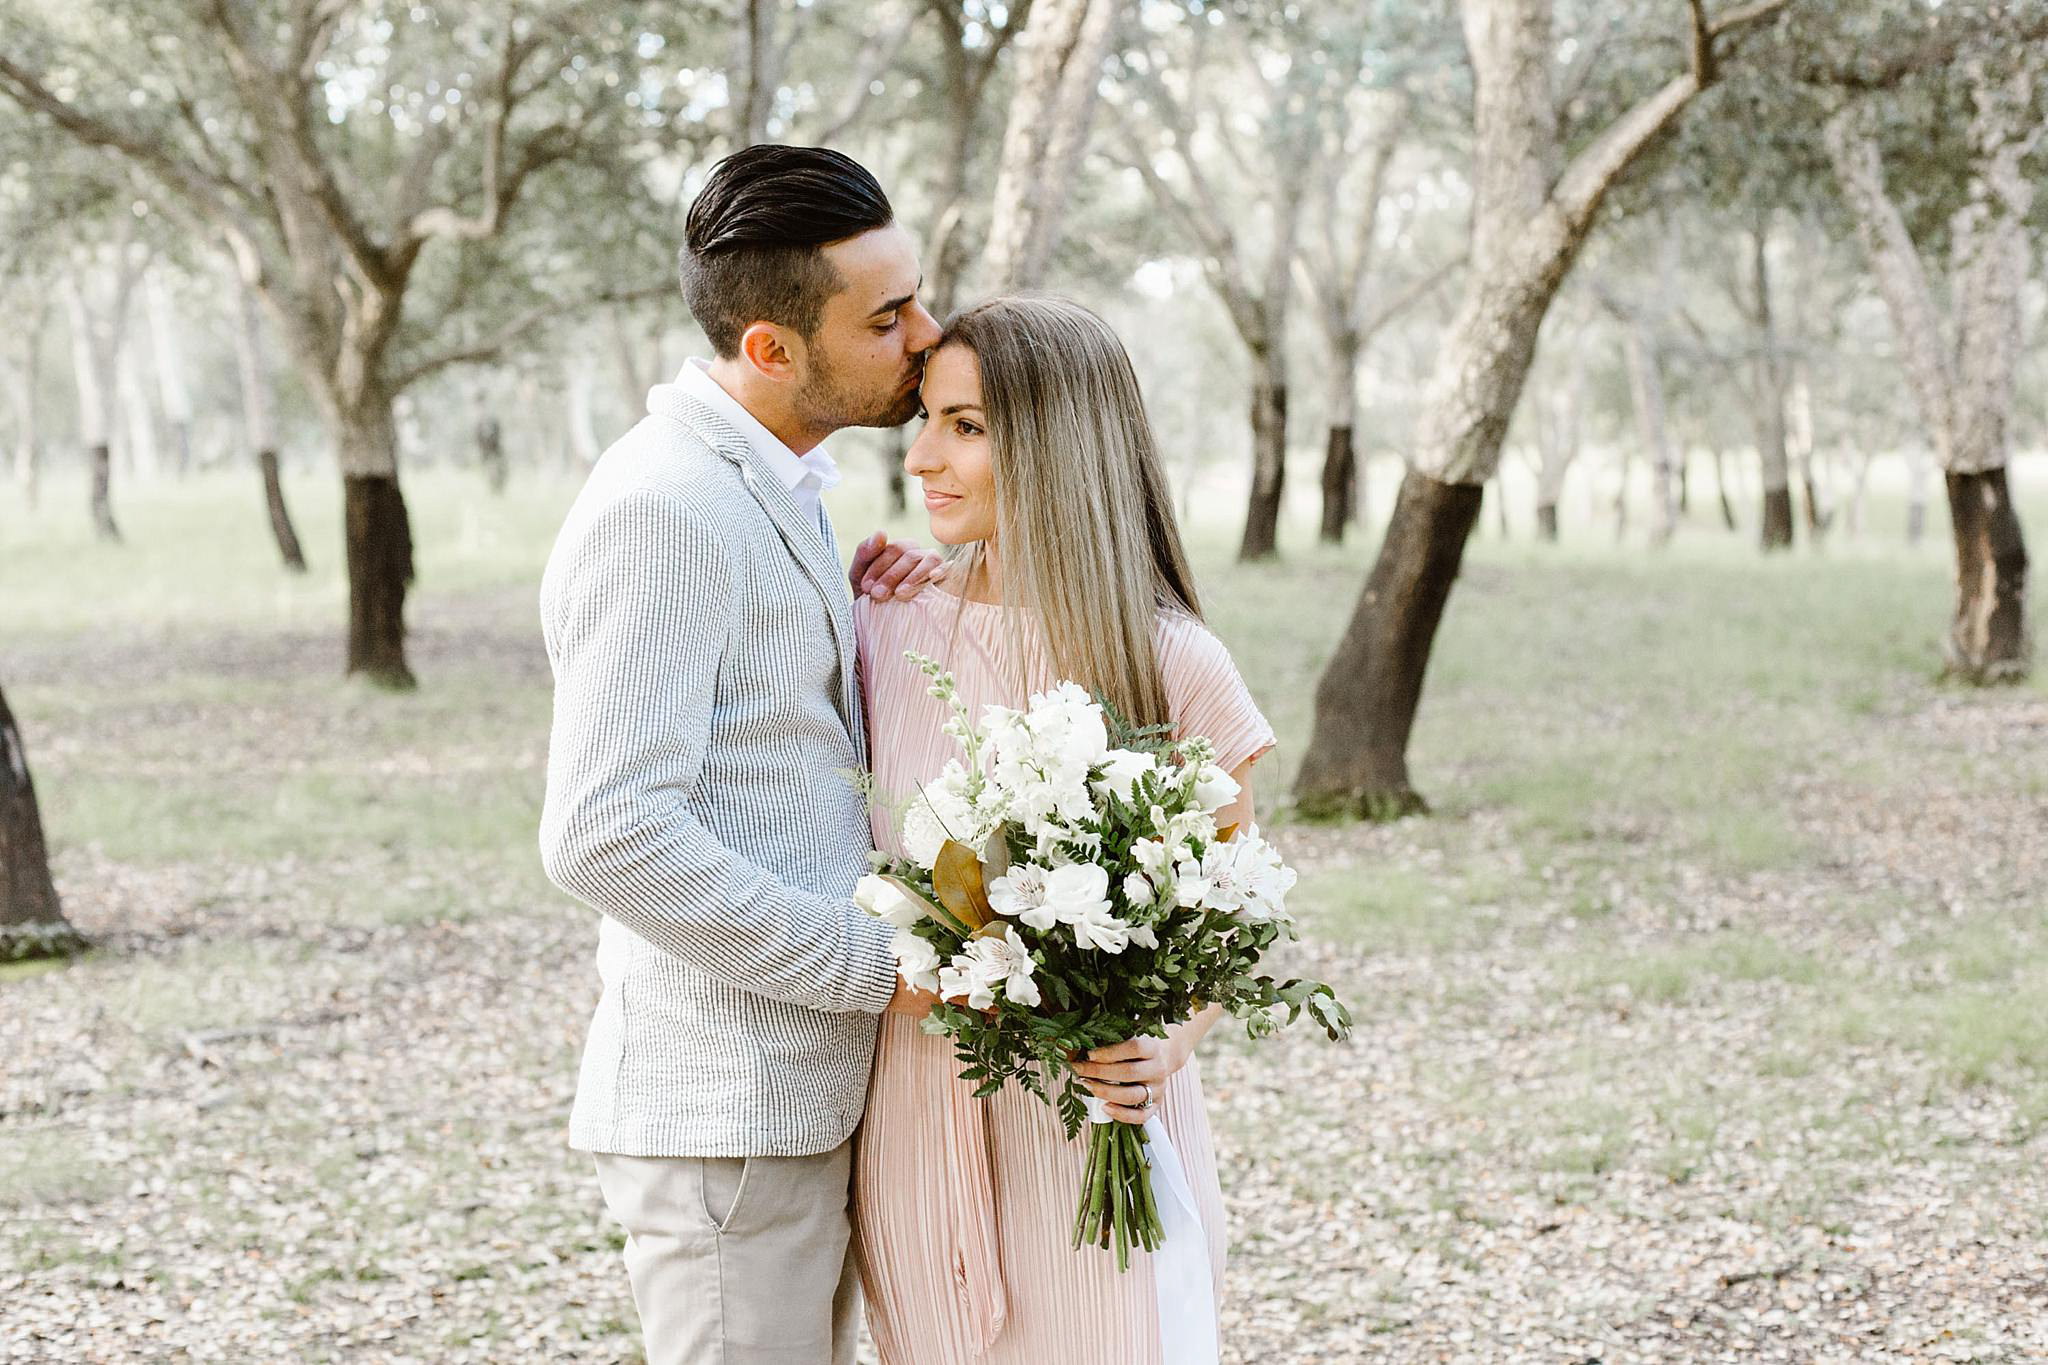 Canberra Wedding Photographer, Engagement Shoot, National Arboretum Canberra, Serbian Wedding, Shae Estella Photography, Southern Highlands Wedding, Sunshine Coast photographer, The Floral Society, Wedding Photography, Wedding photographer, portrait shoot